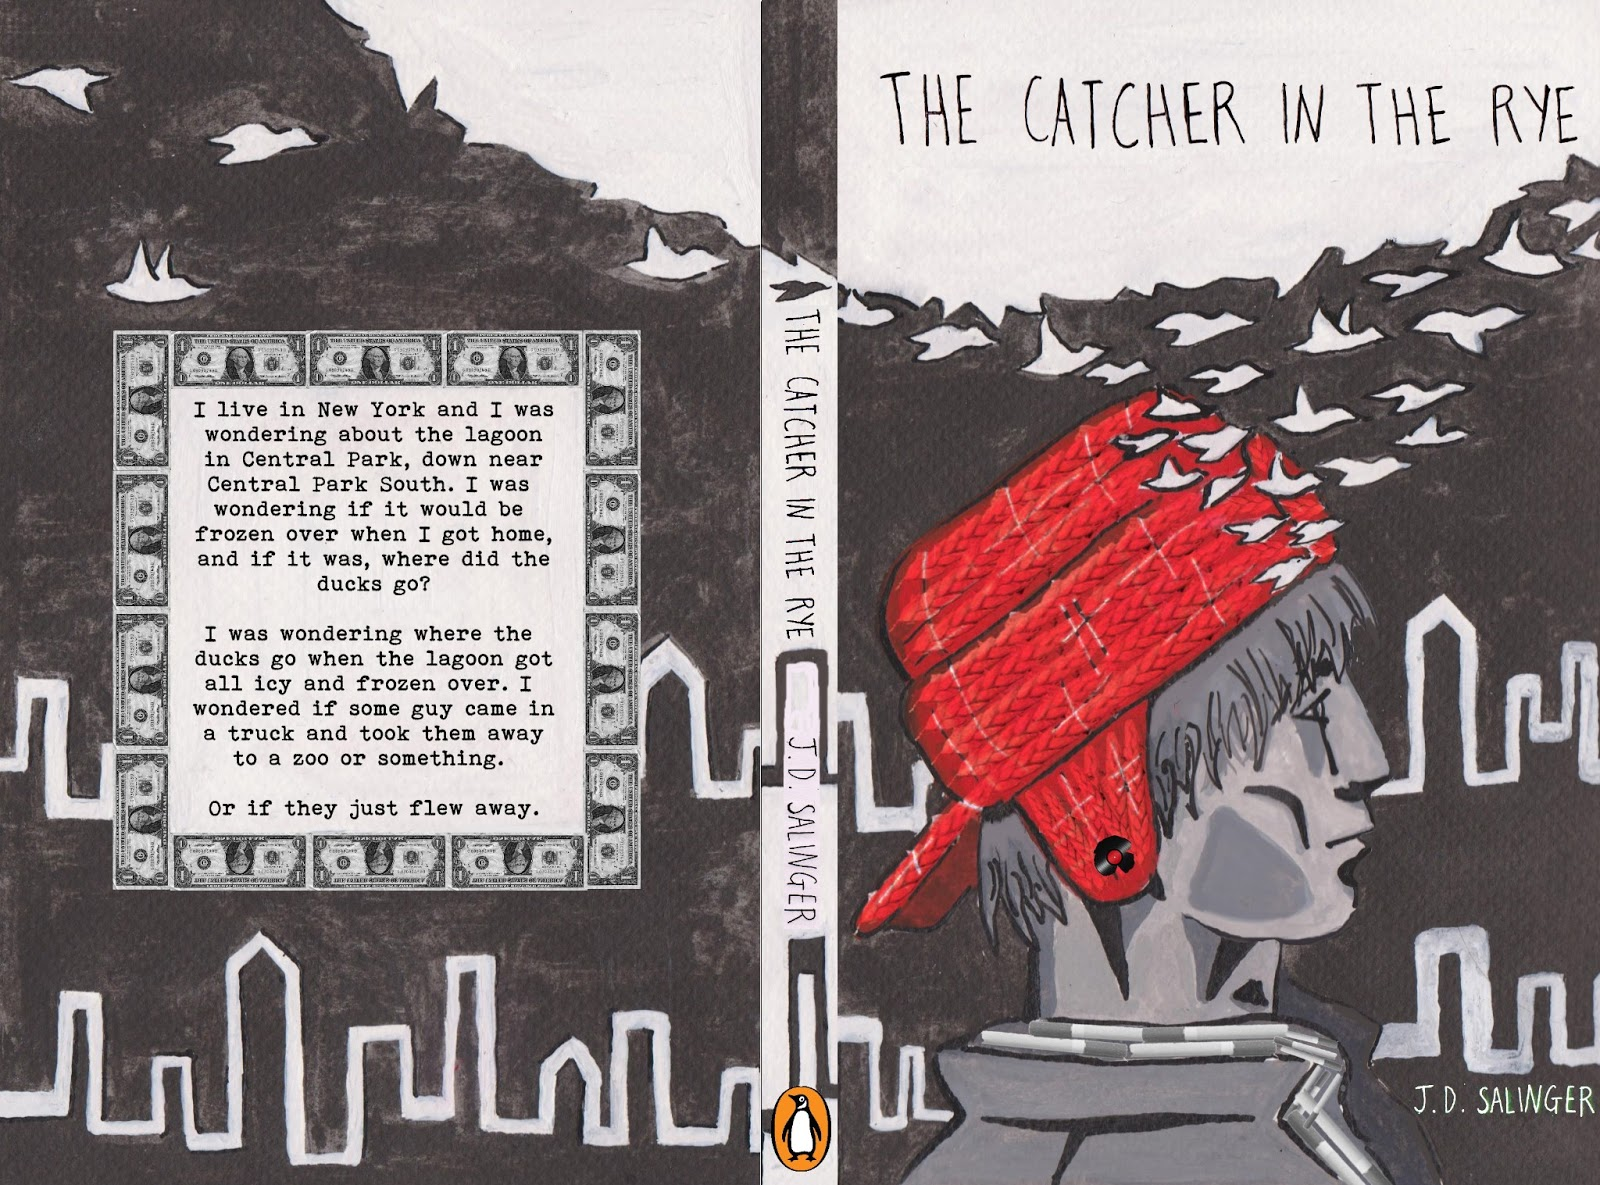 a defense against the harsh allegations against the catcher in the rye in the article of gish jen wh